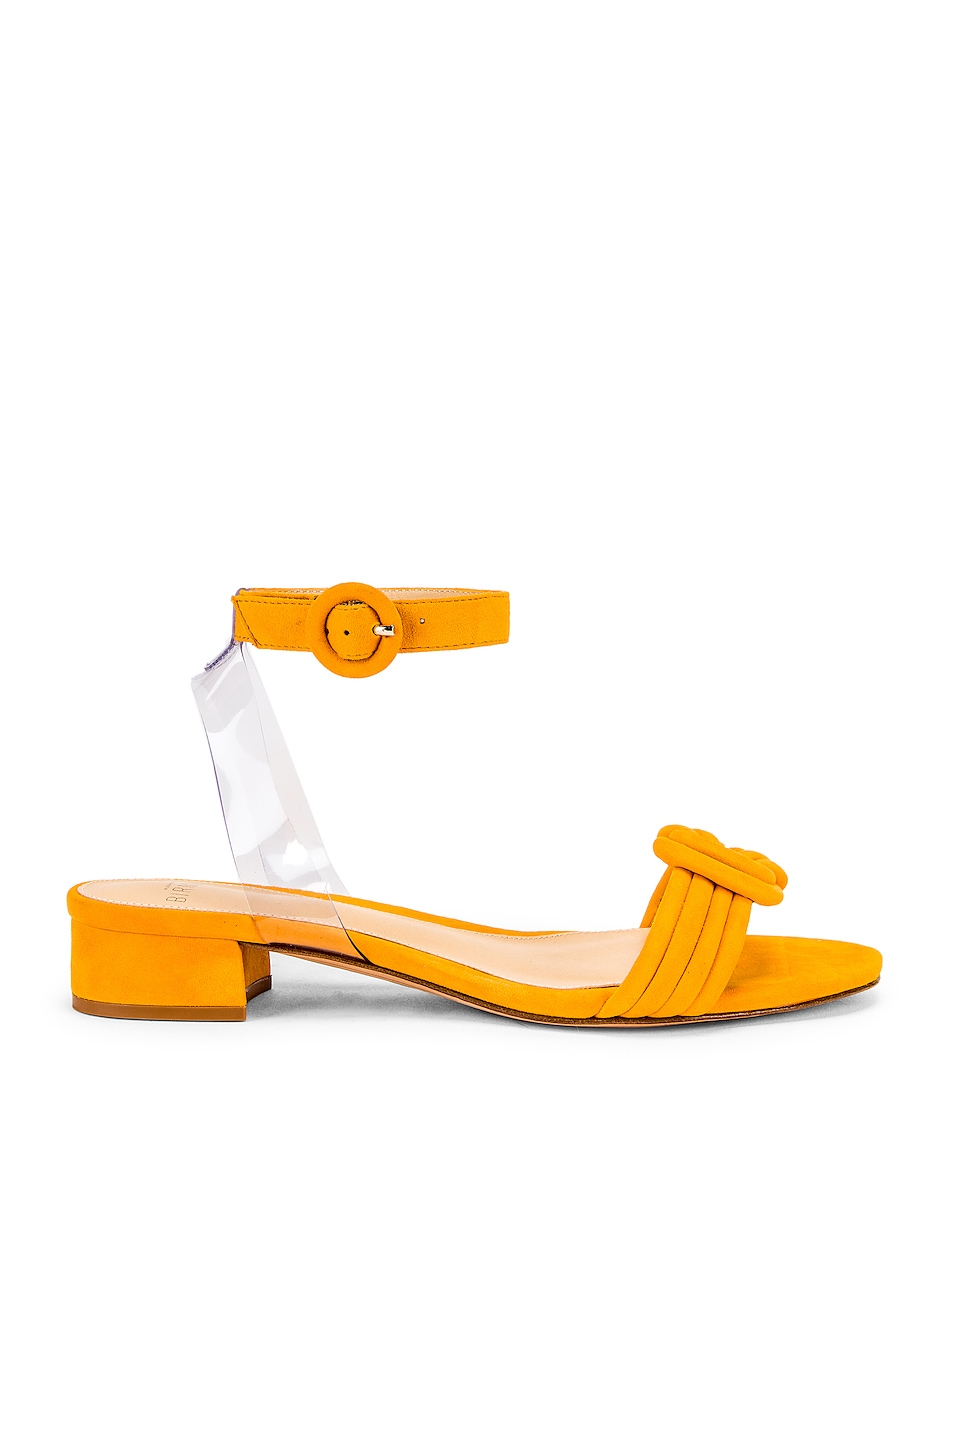 c9f593a94e2 Alexandre Birman Vicky Ankle Sandal in Sunflower & Transparent | FWRD